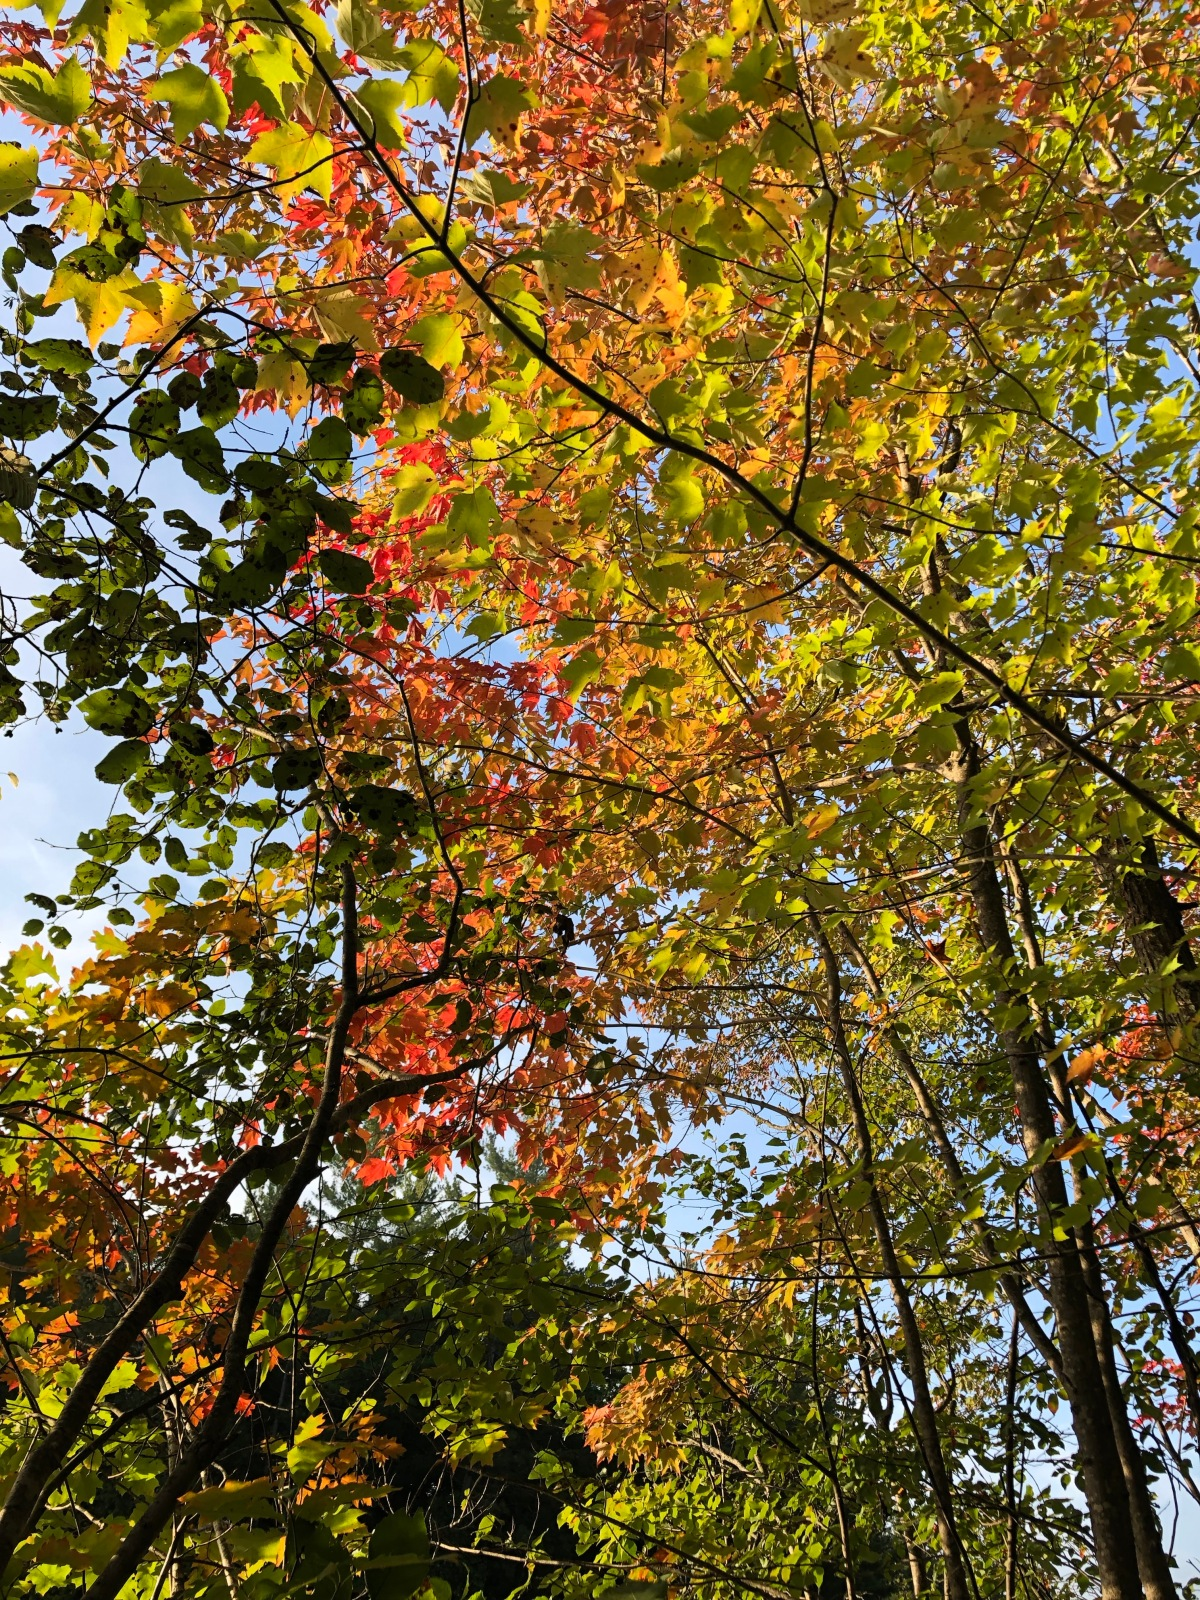 The mix of fall colors in the tree canopy